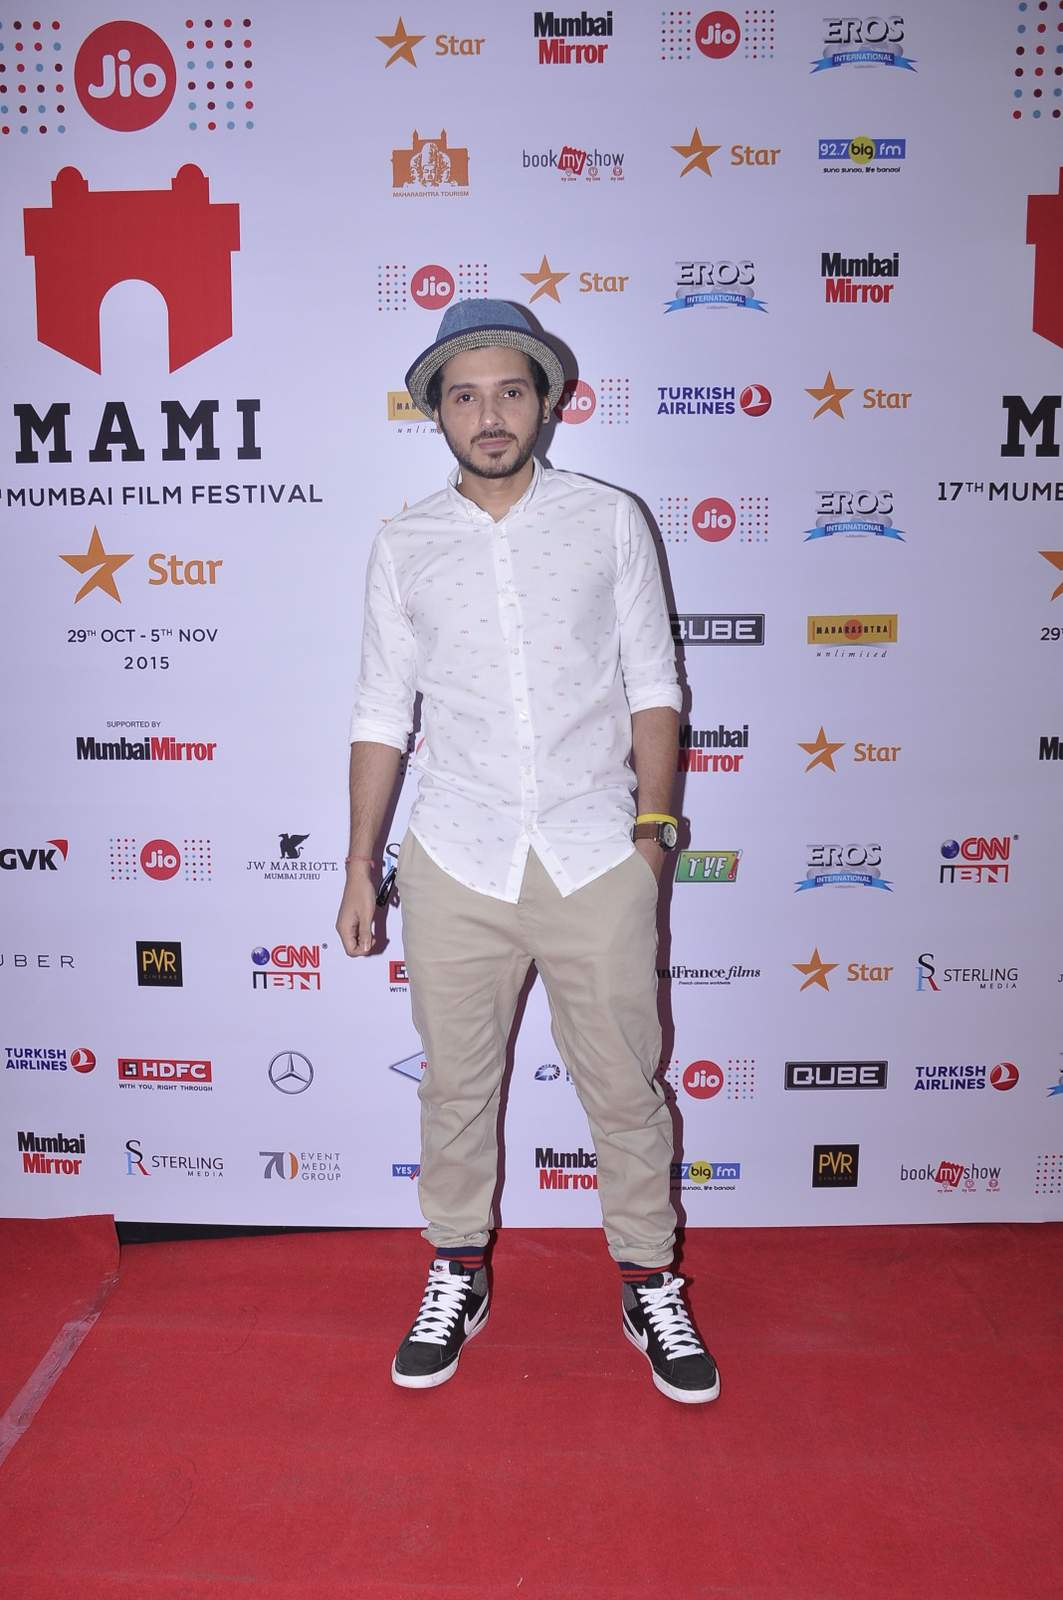 Jio MAMI 17th Mumbai Film Festival